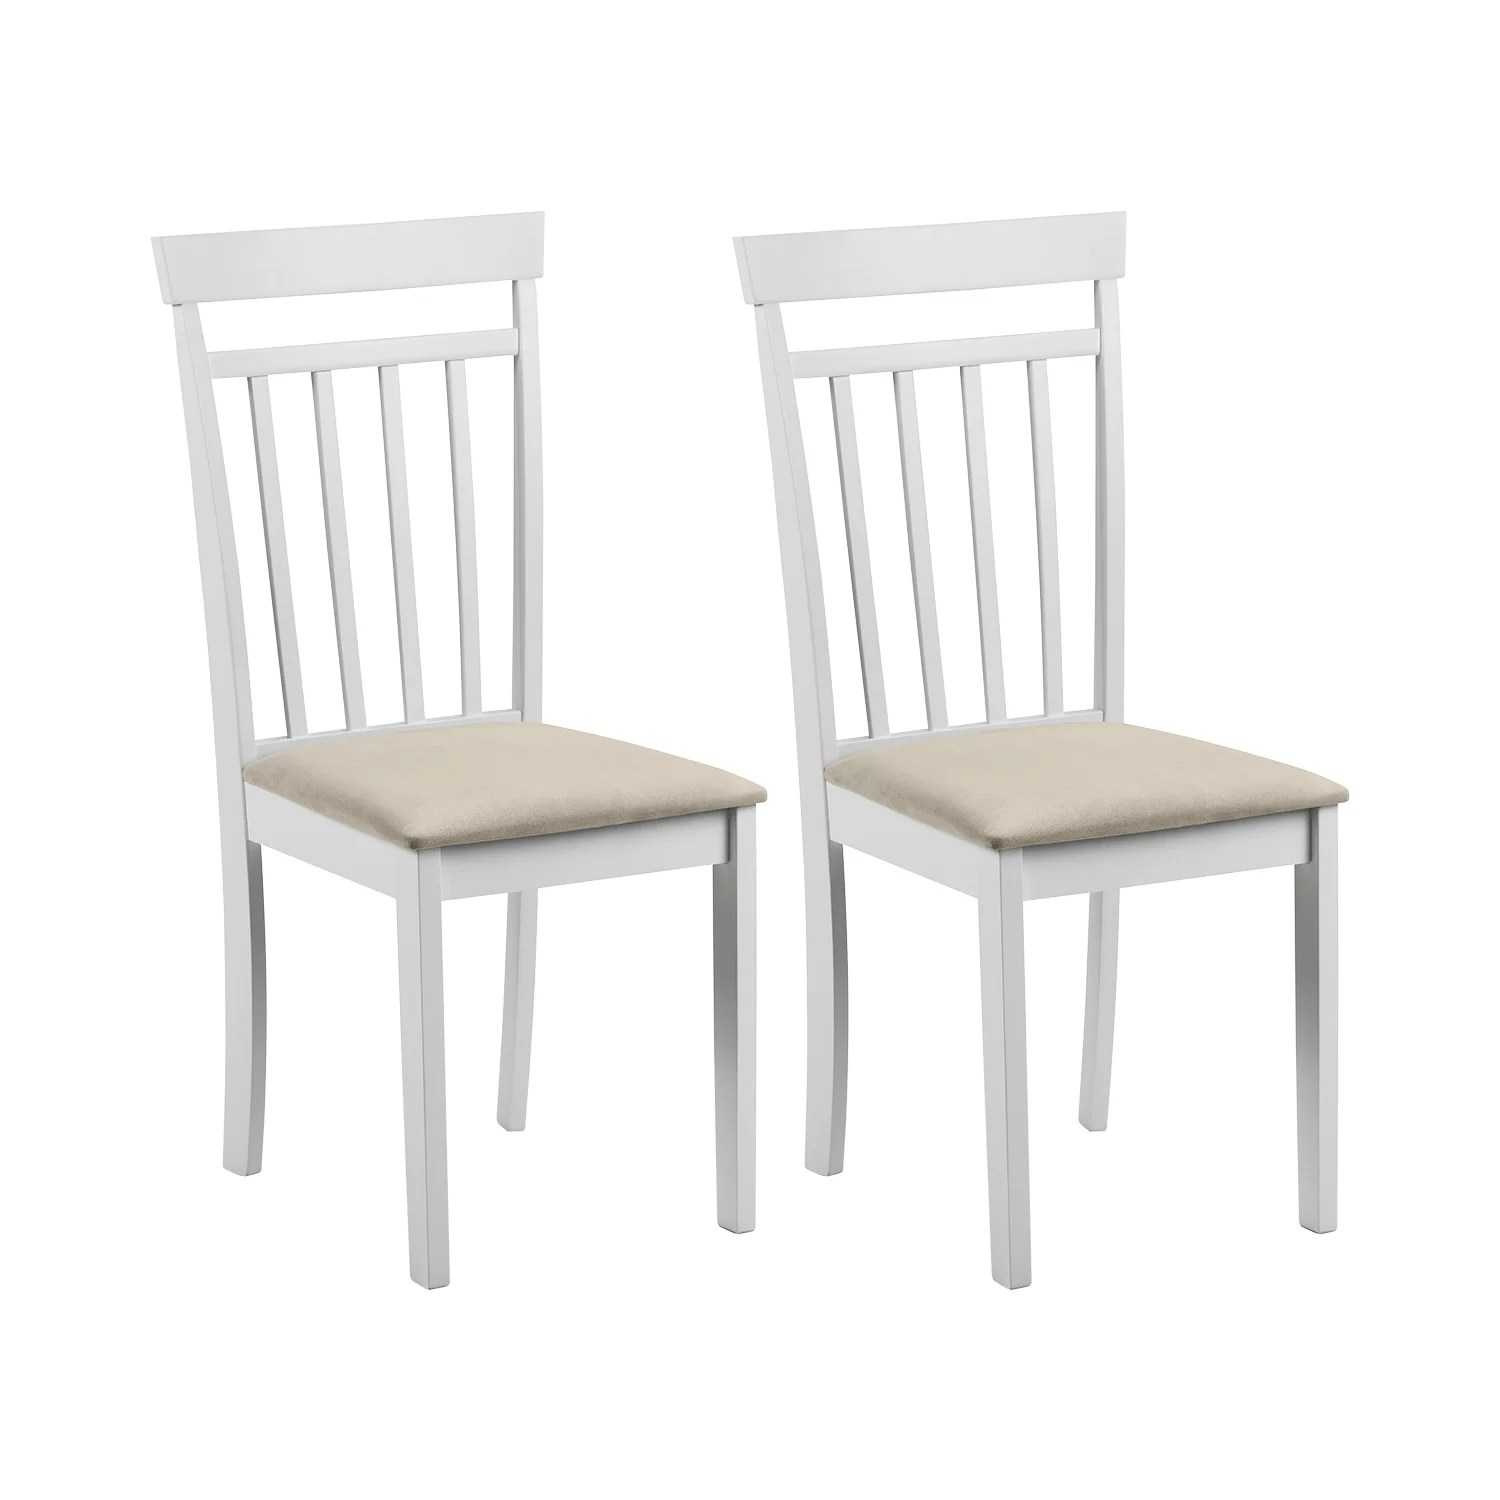 White Wooden Dining Chairs Inglewood Solid Wood Dining Chair